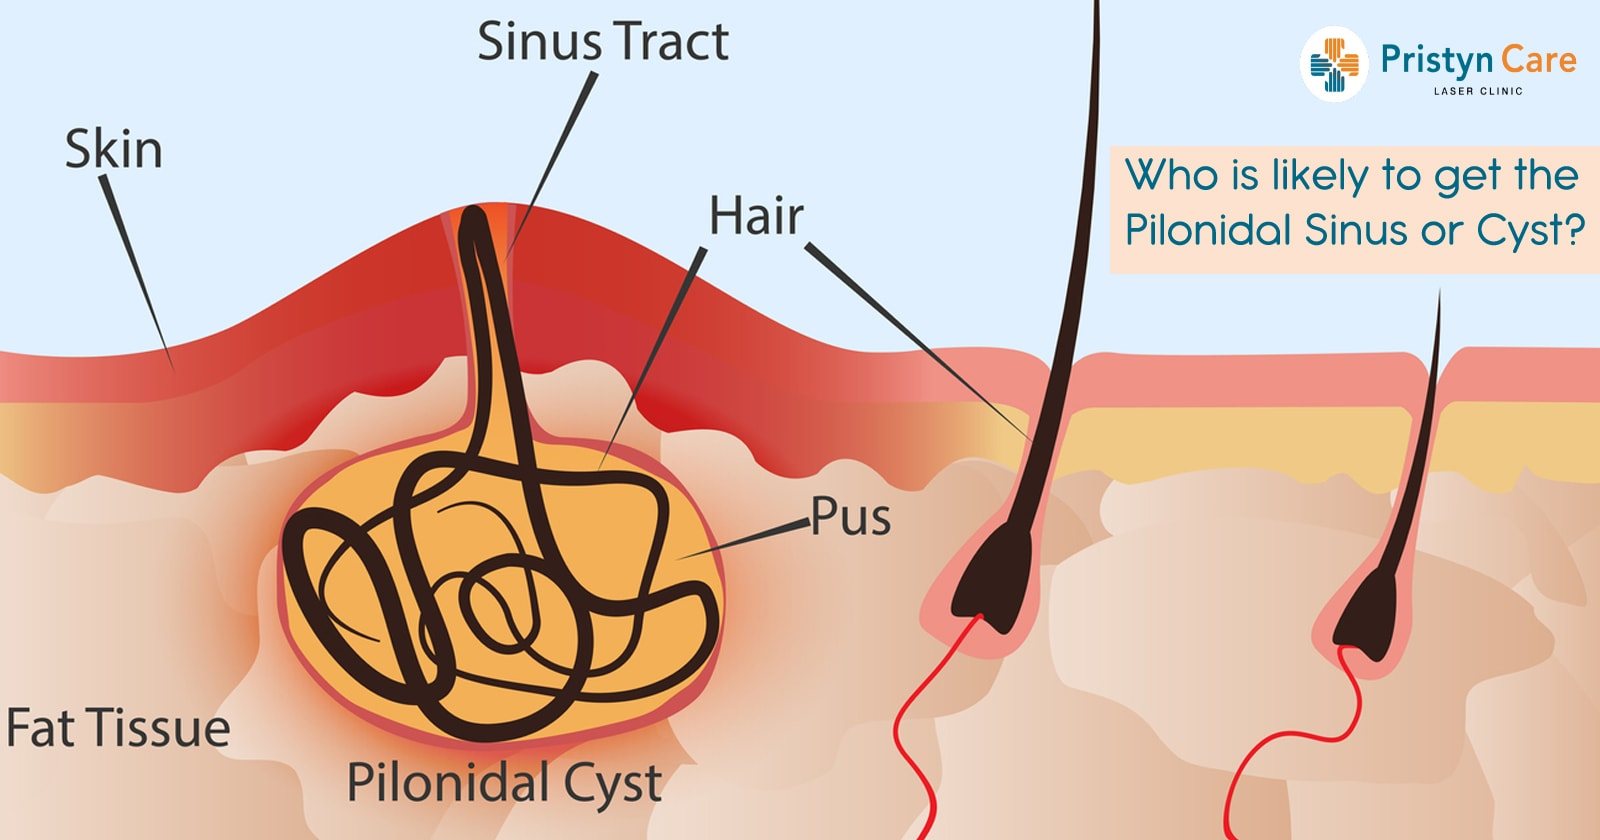 Who is likely to get the Pilonidal Sinus or Cyst?